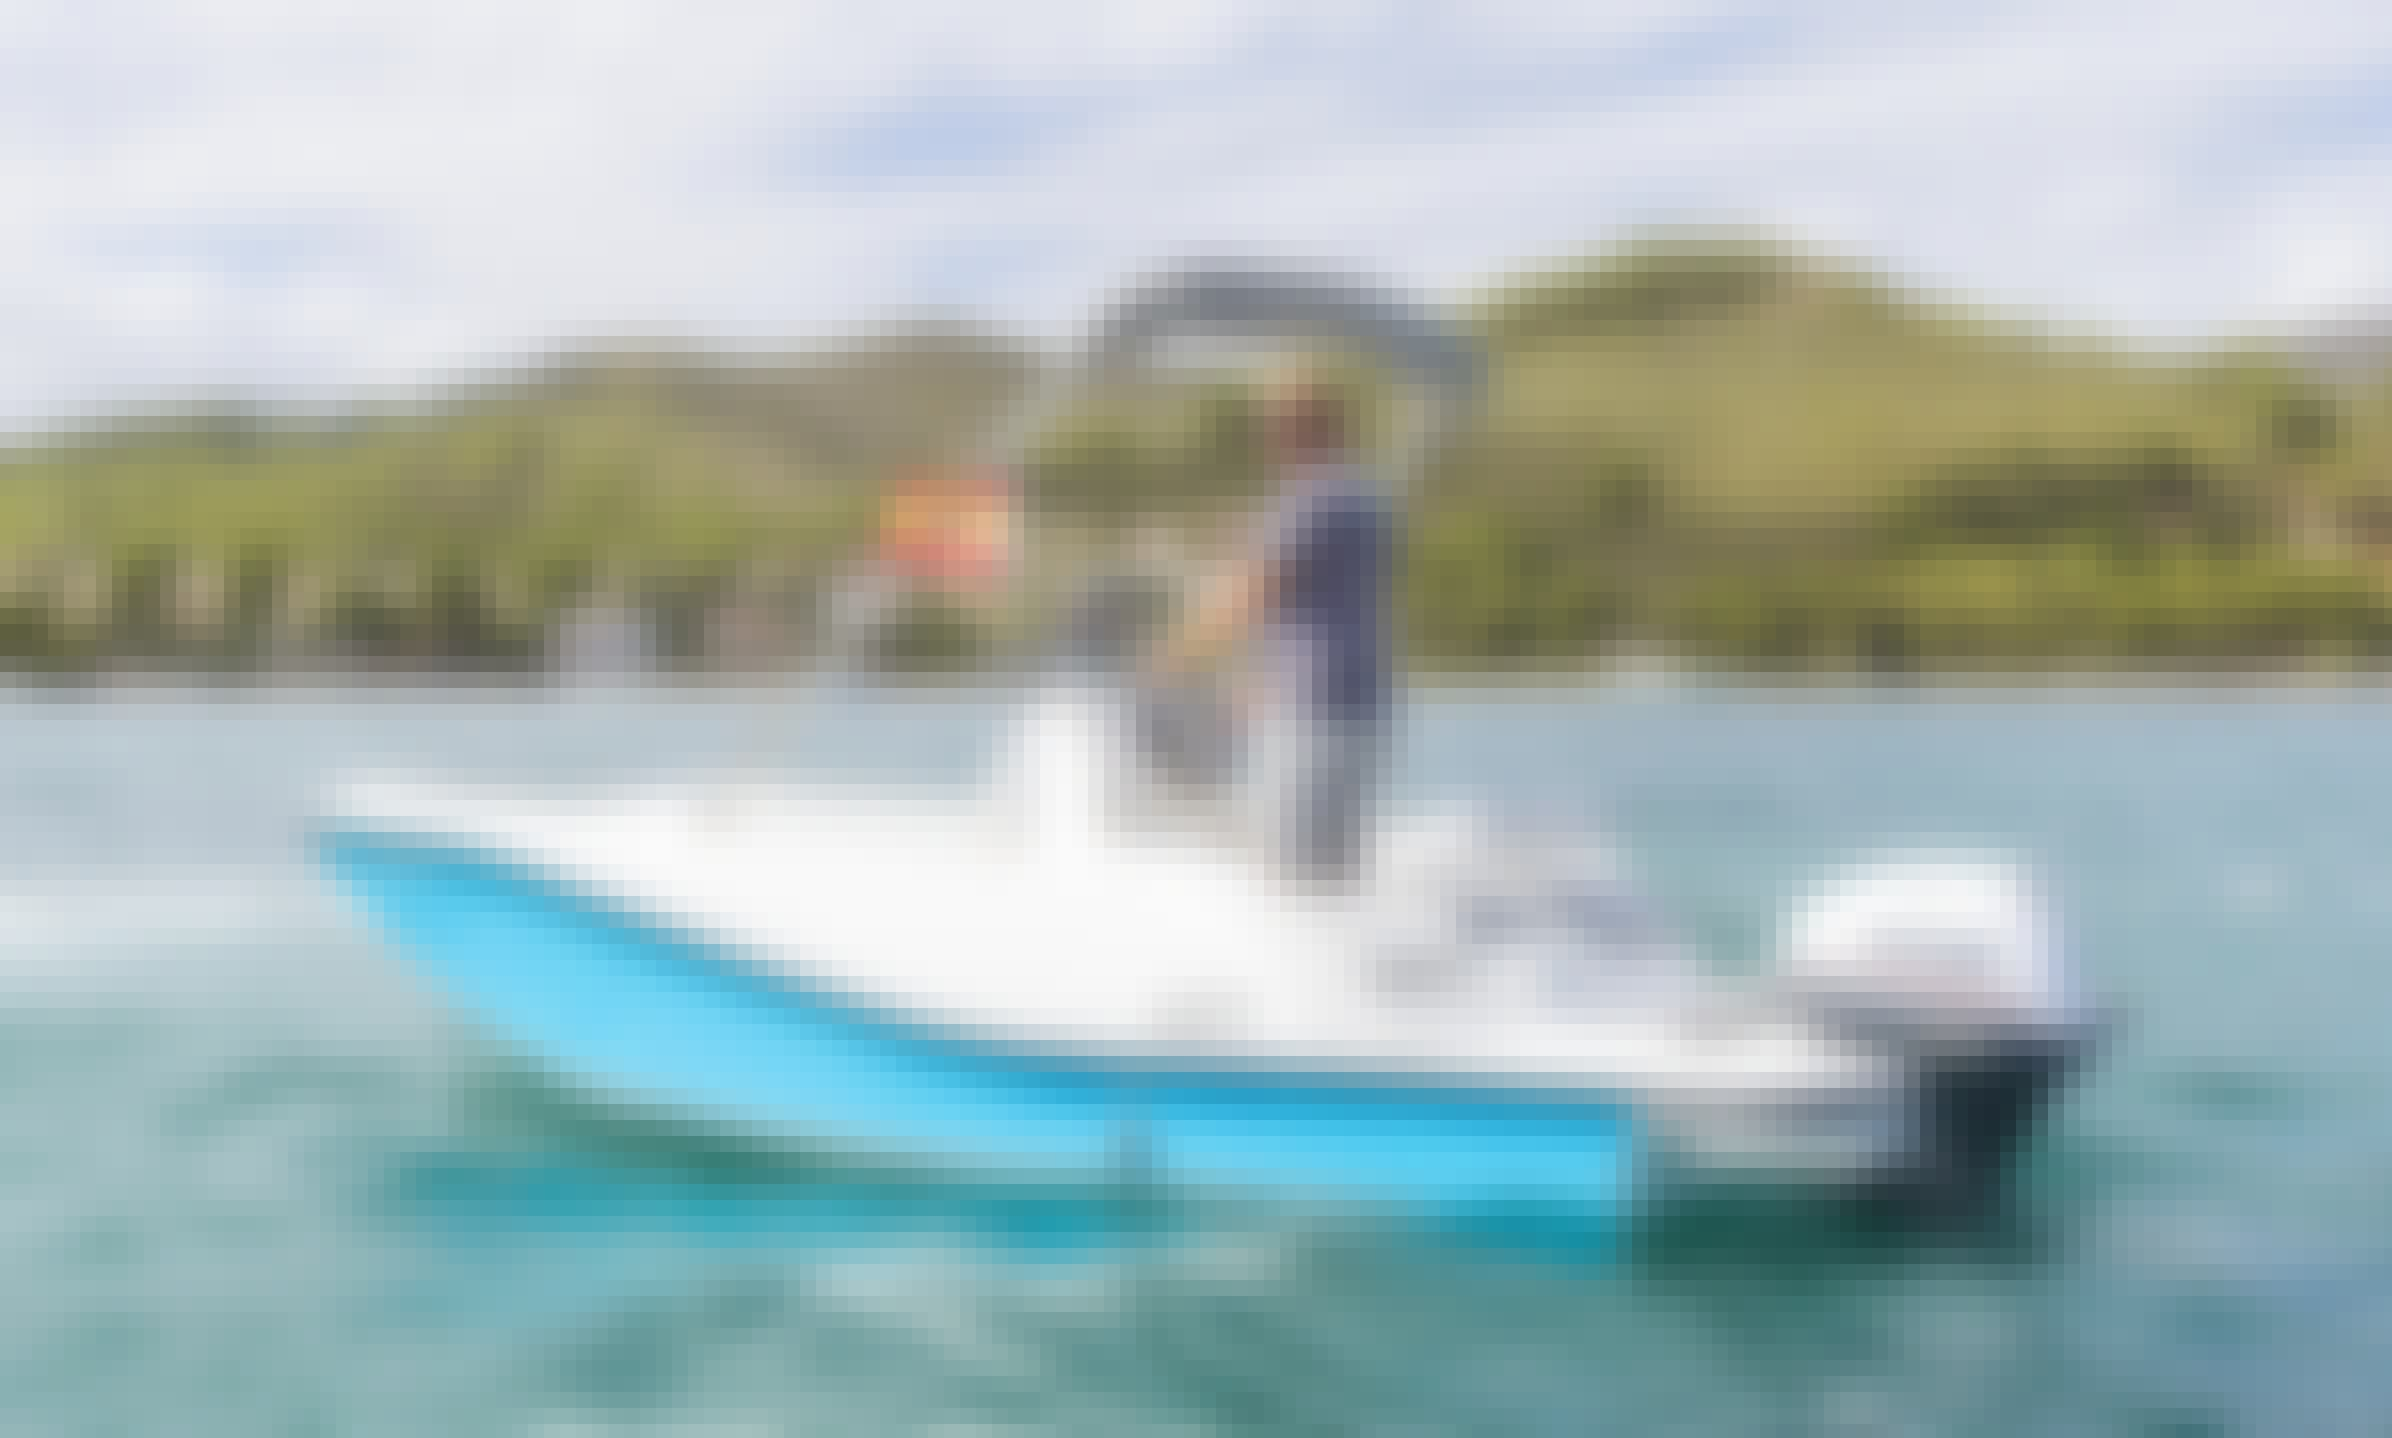 V2 5.0 Powerboat with 15 Hp Outboard for Rent in Port d'Alcúdia, Mallorca! No license required!